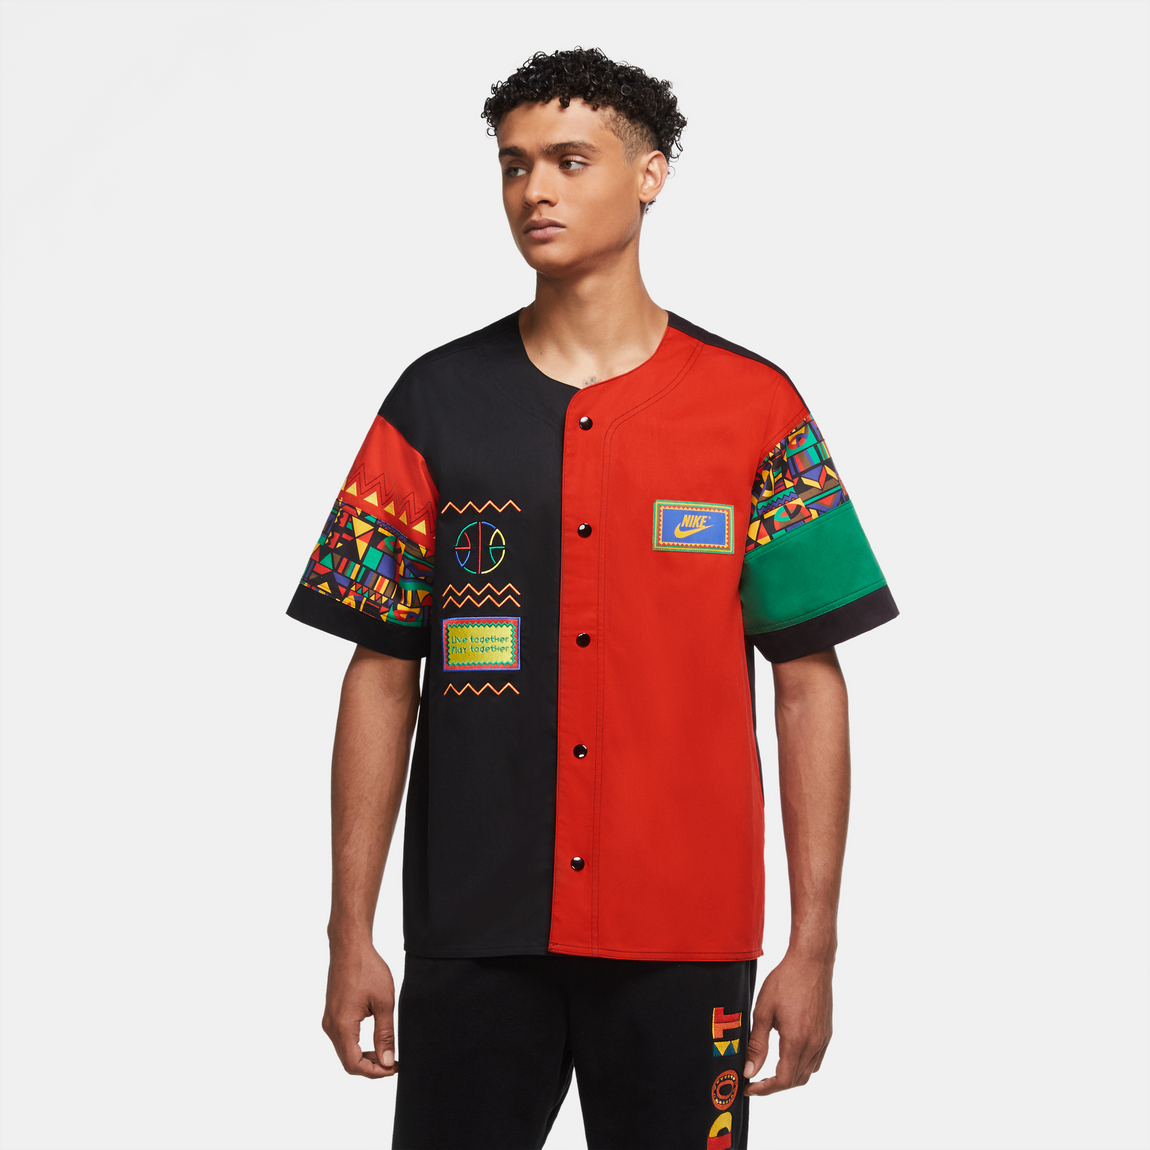 Nike Sporstwear Re-Issue Baseball Jersey (Black/Chile Red) - Nike Sporstwear Re-Issue Baseball Jersey (Black/Chile Red) -